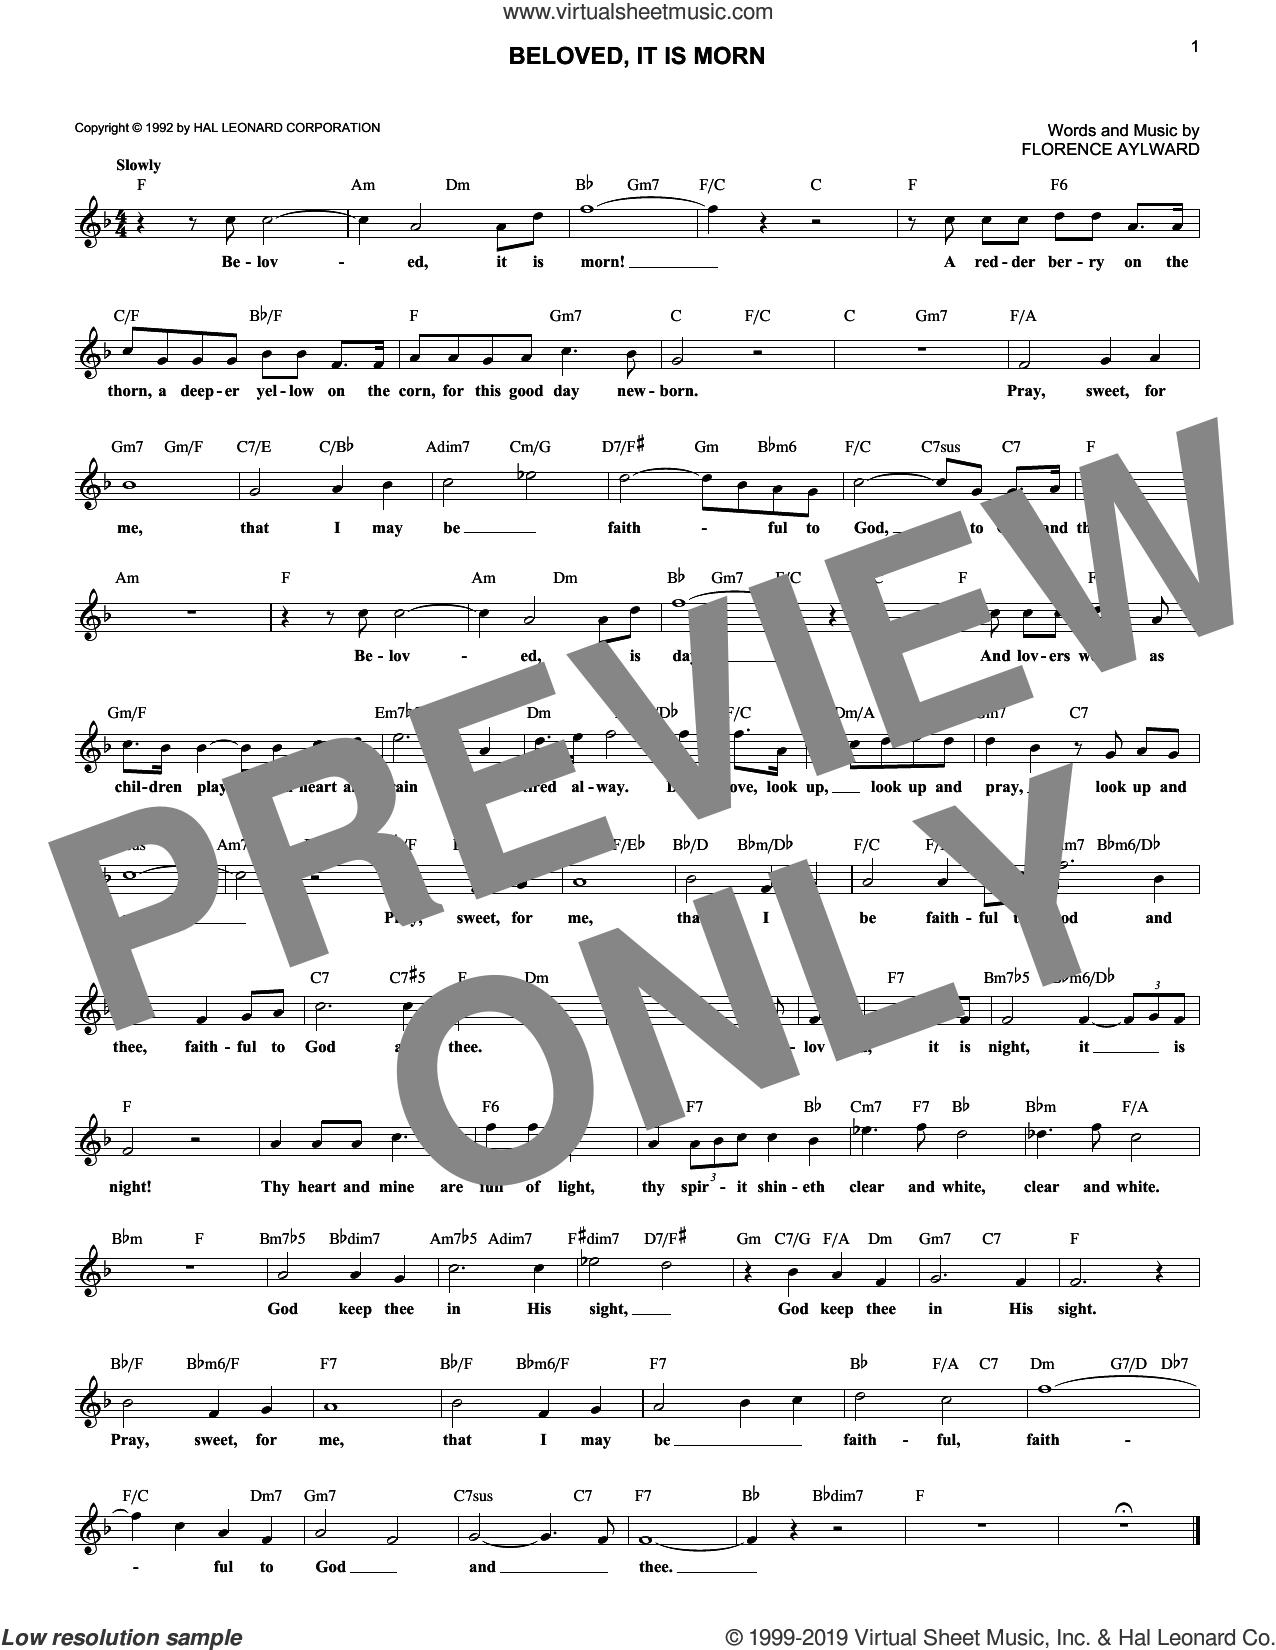 Beloved, It Is Morn sheet music for voice and other instruments (fake book) by Florence Aylward, wedding score, intermediate skill level